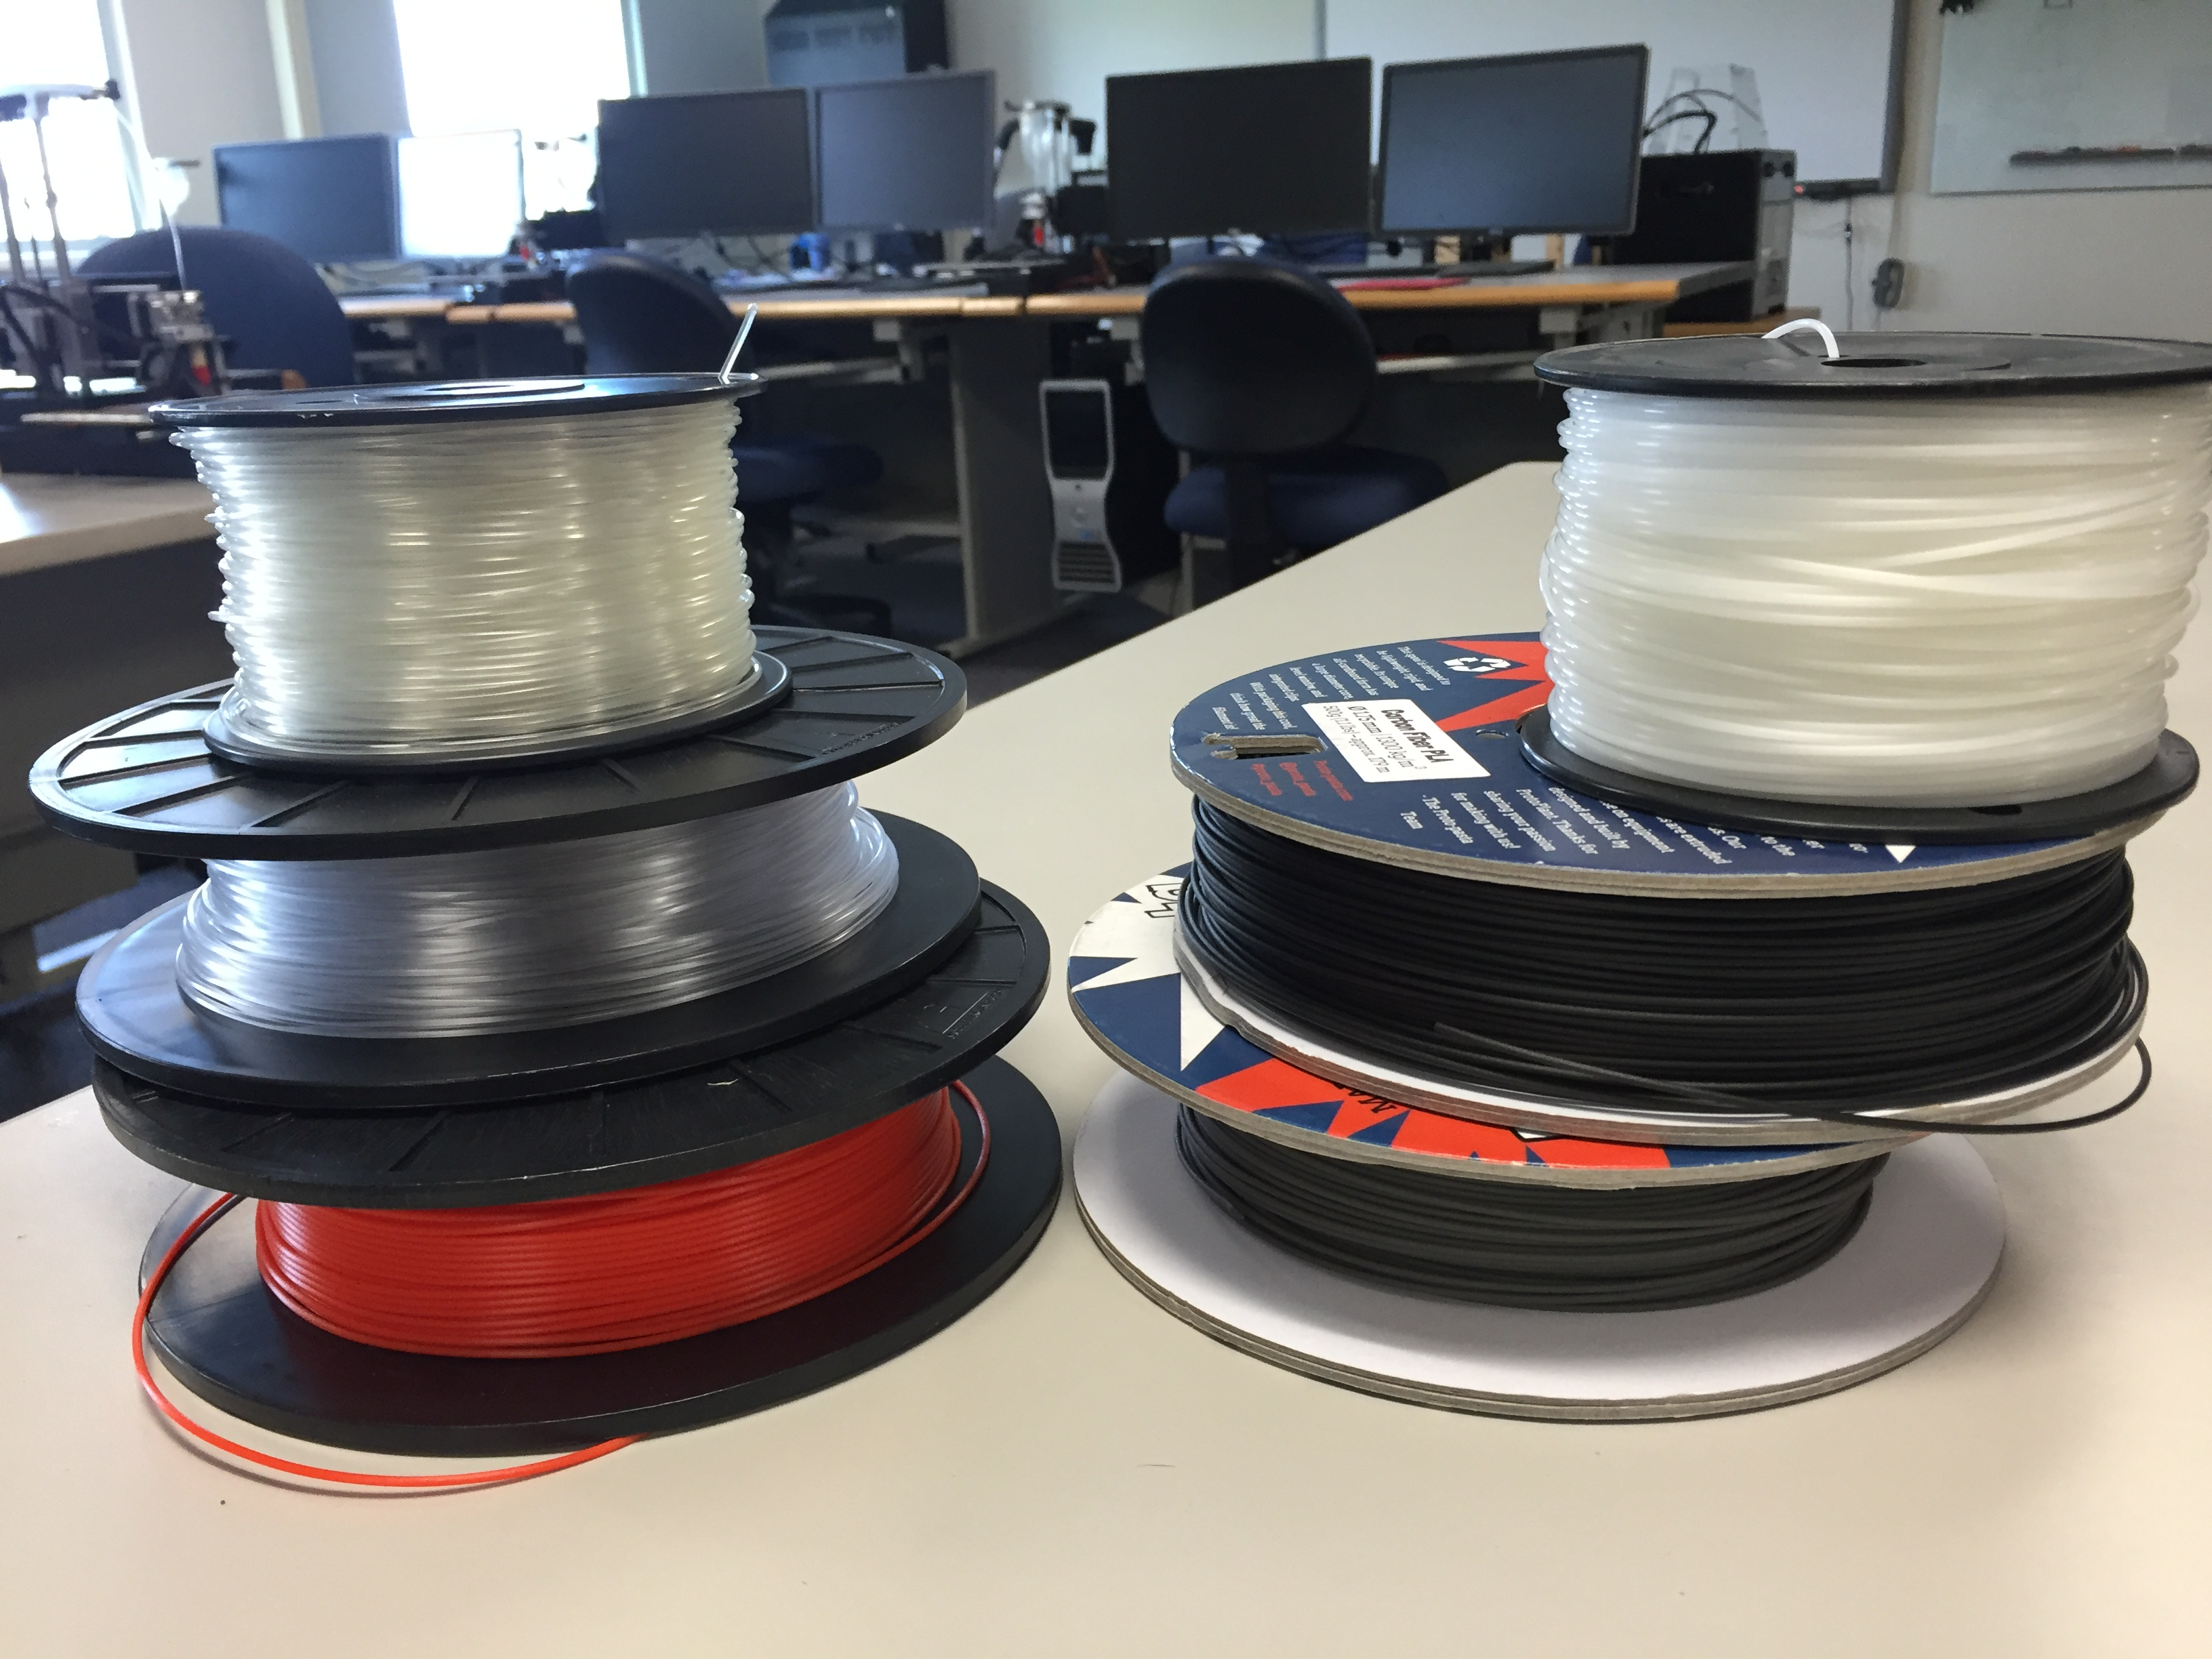 Spools for the 3-D printers (Photo by Robyne, KUAC - Fairbanks)